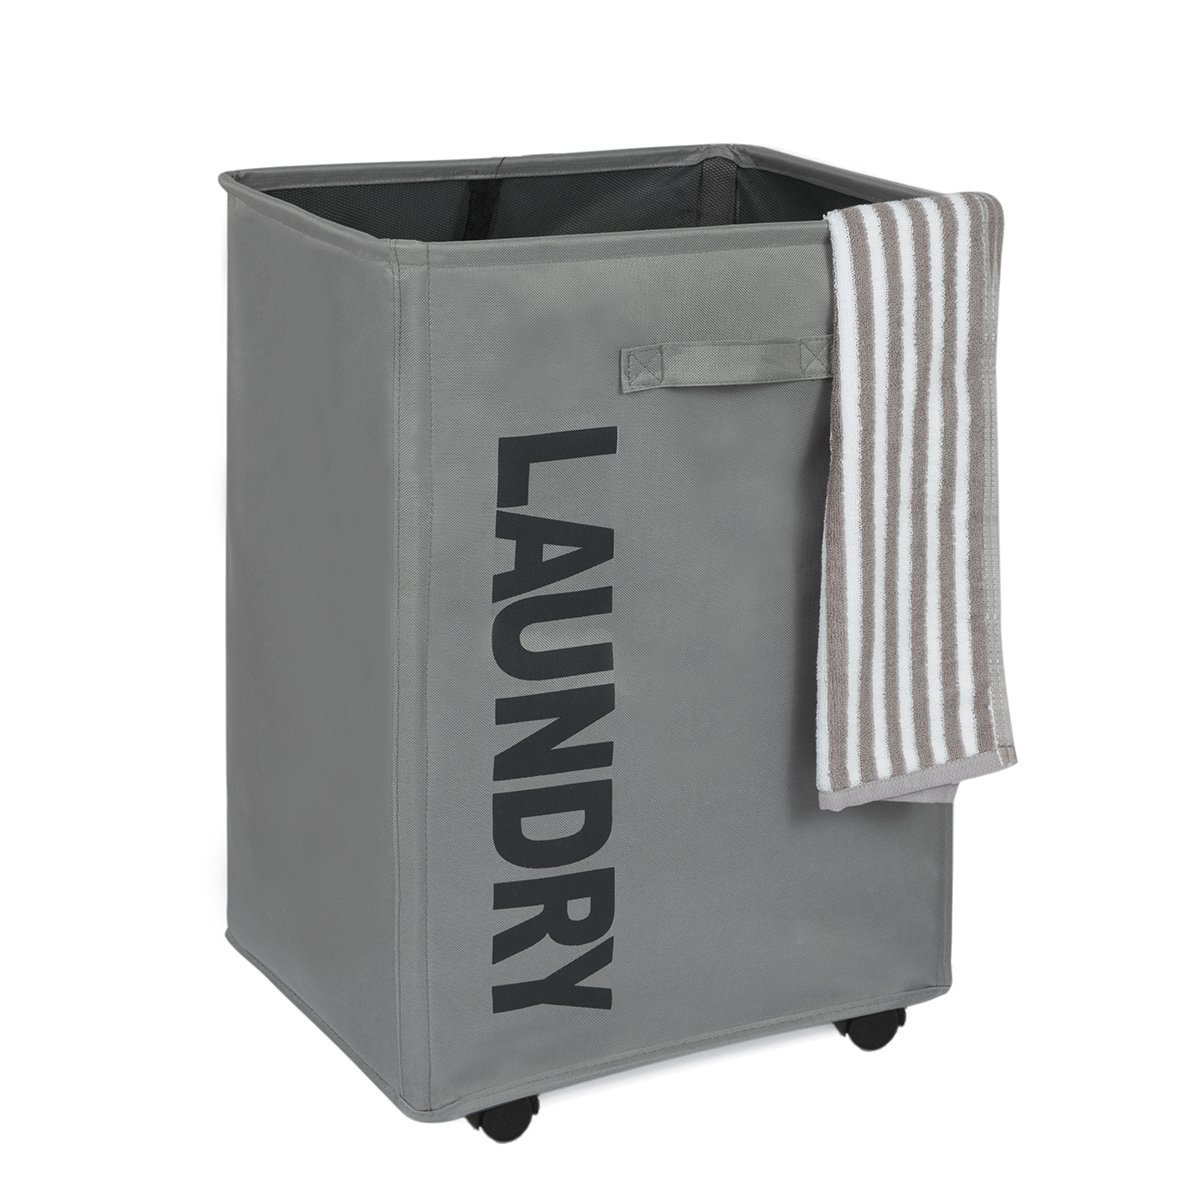 WOWLIVE 3 Section Laundry Hamper on Wheels Rolling Tall Collapsible Corner Laundry Basket Sorter Lid Waterproof Rectangular Dirty Clothes Organizer Storage Bin (Cream)